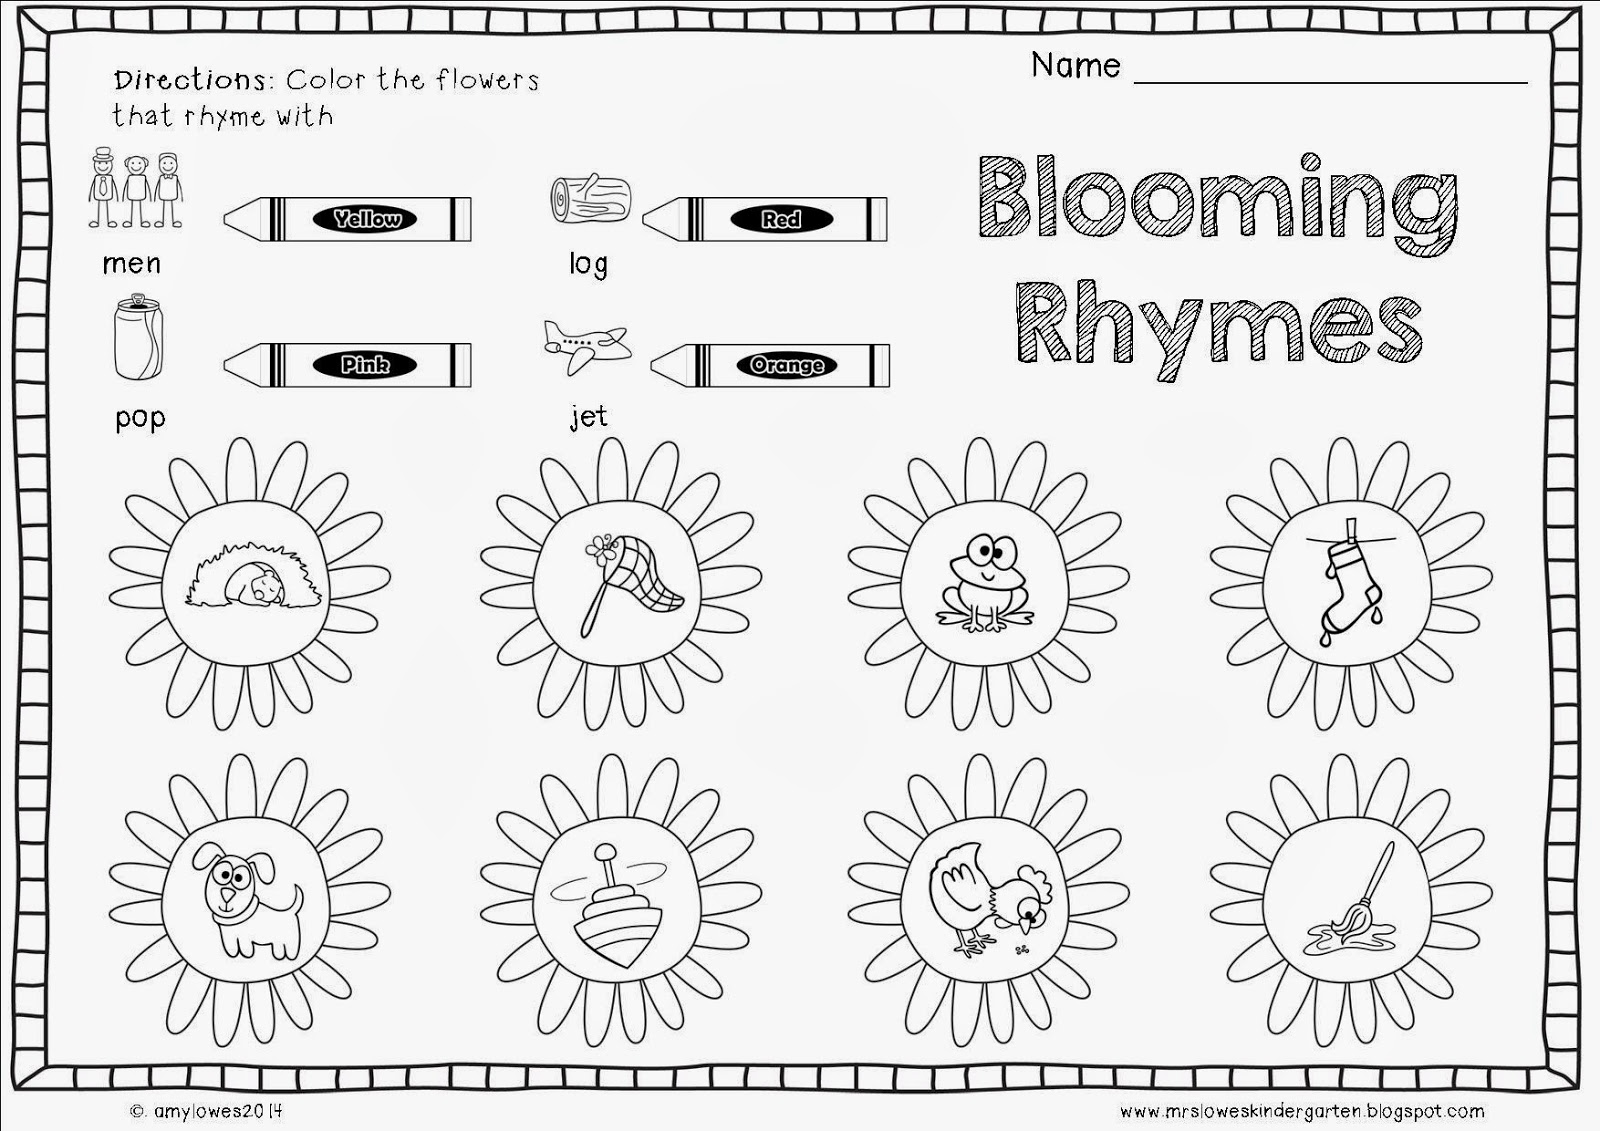 worksheet. Spring Worksheets For Kindergarten. Grass Fedjp Worksheet ...